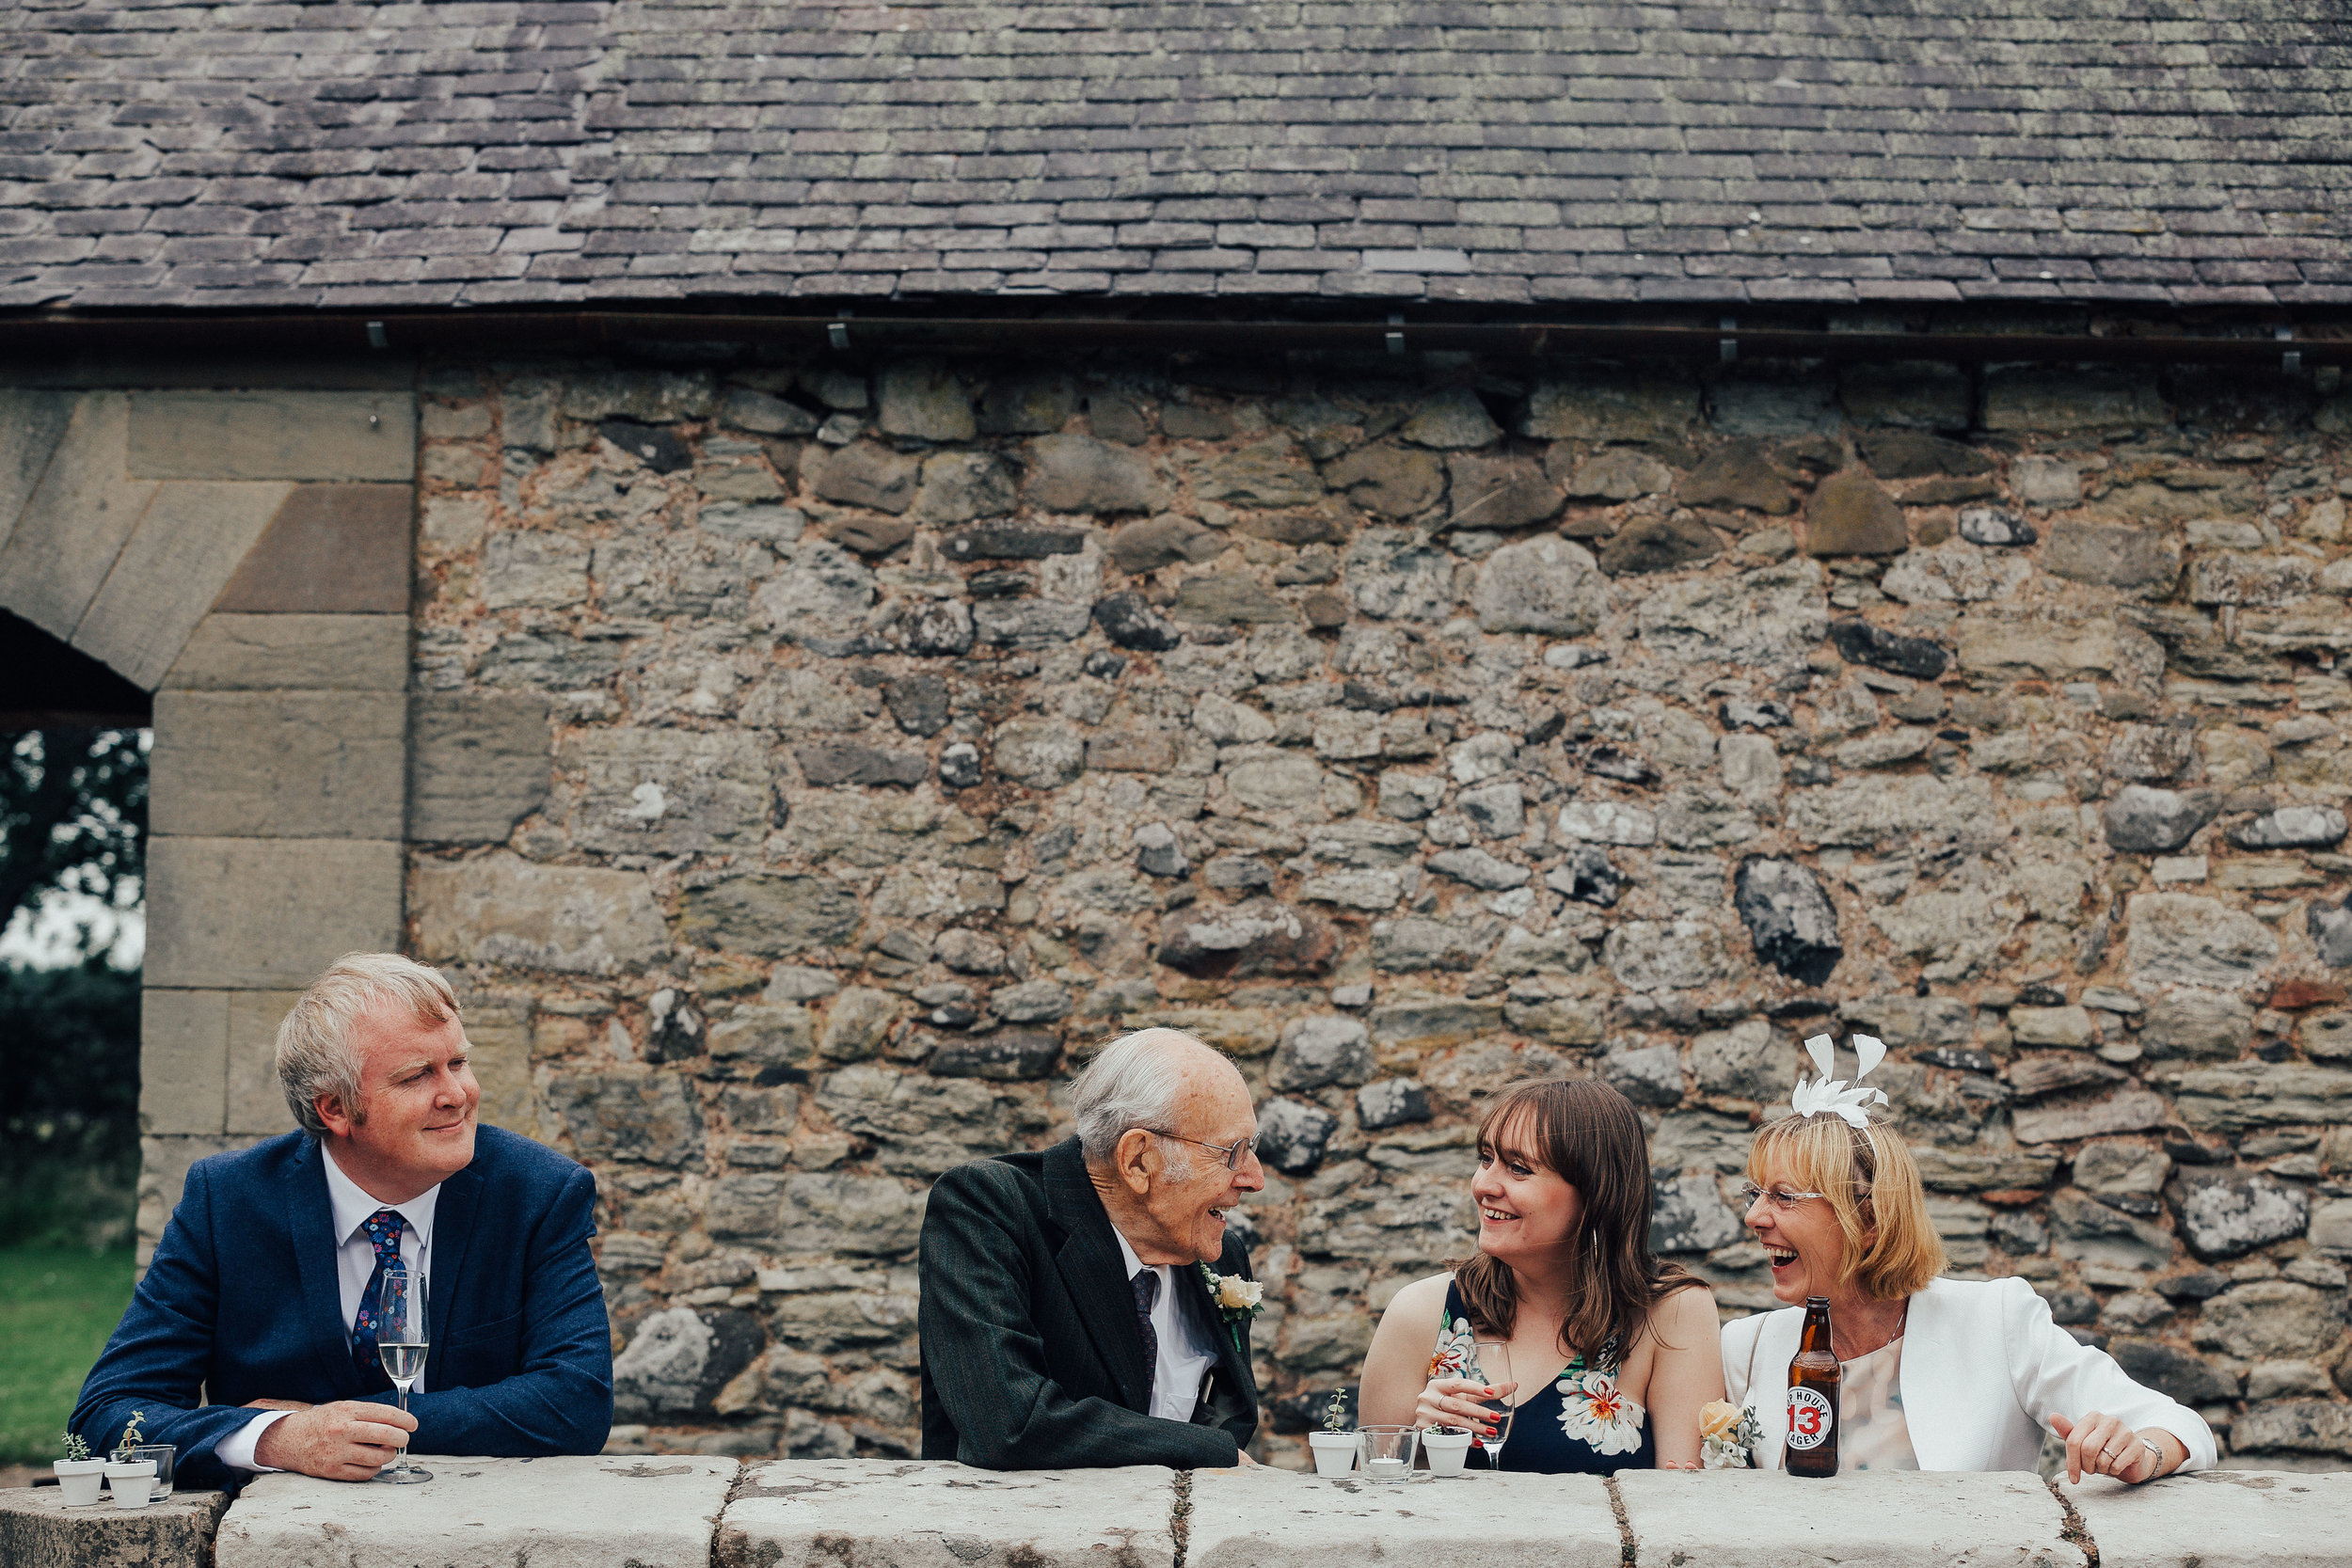 PJ_PHILLIPS_PHOTOGRAPHY_EDINBURGH_WEDDERBURN_BARNS_WEDDING_EDINBURGH_WEDDING_PHOTOGRAPHER_110.jpg